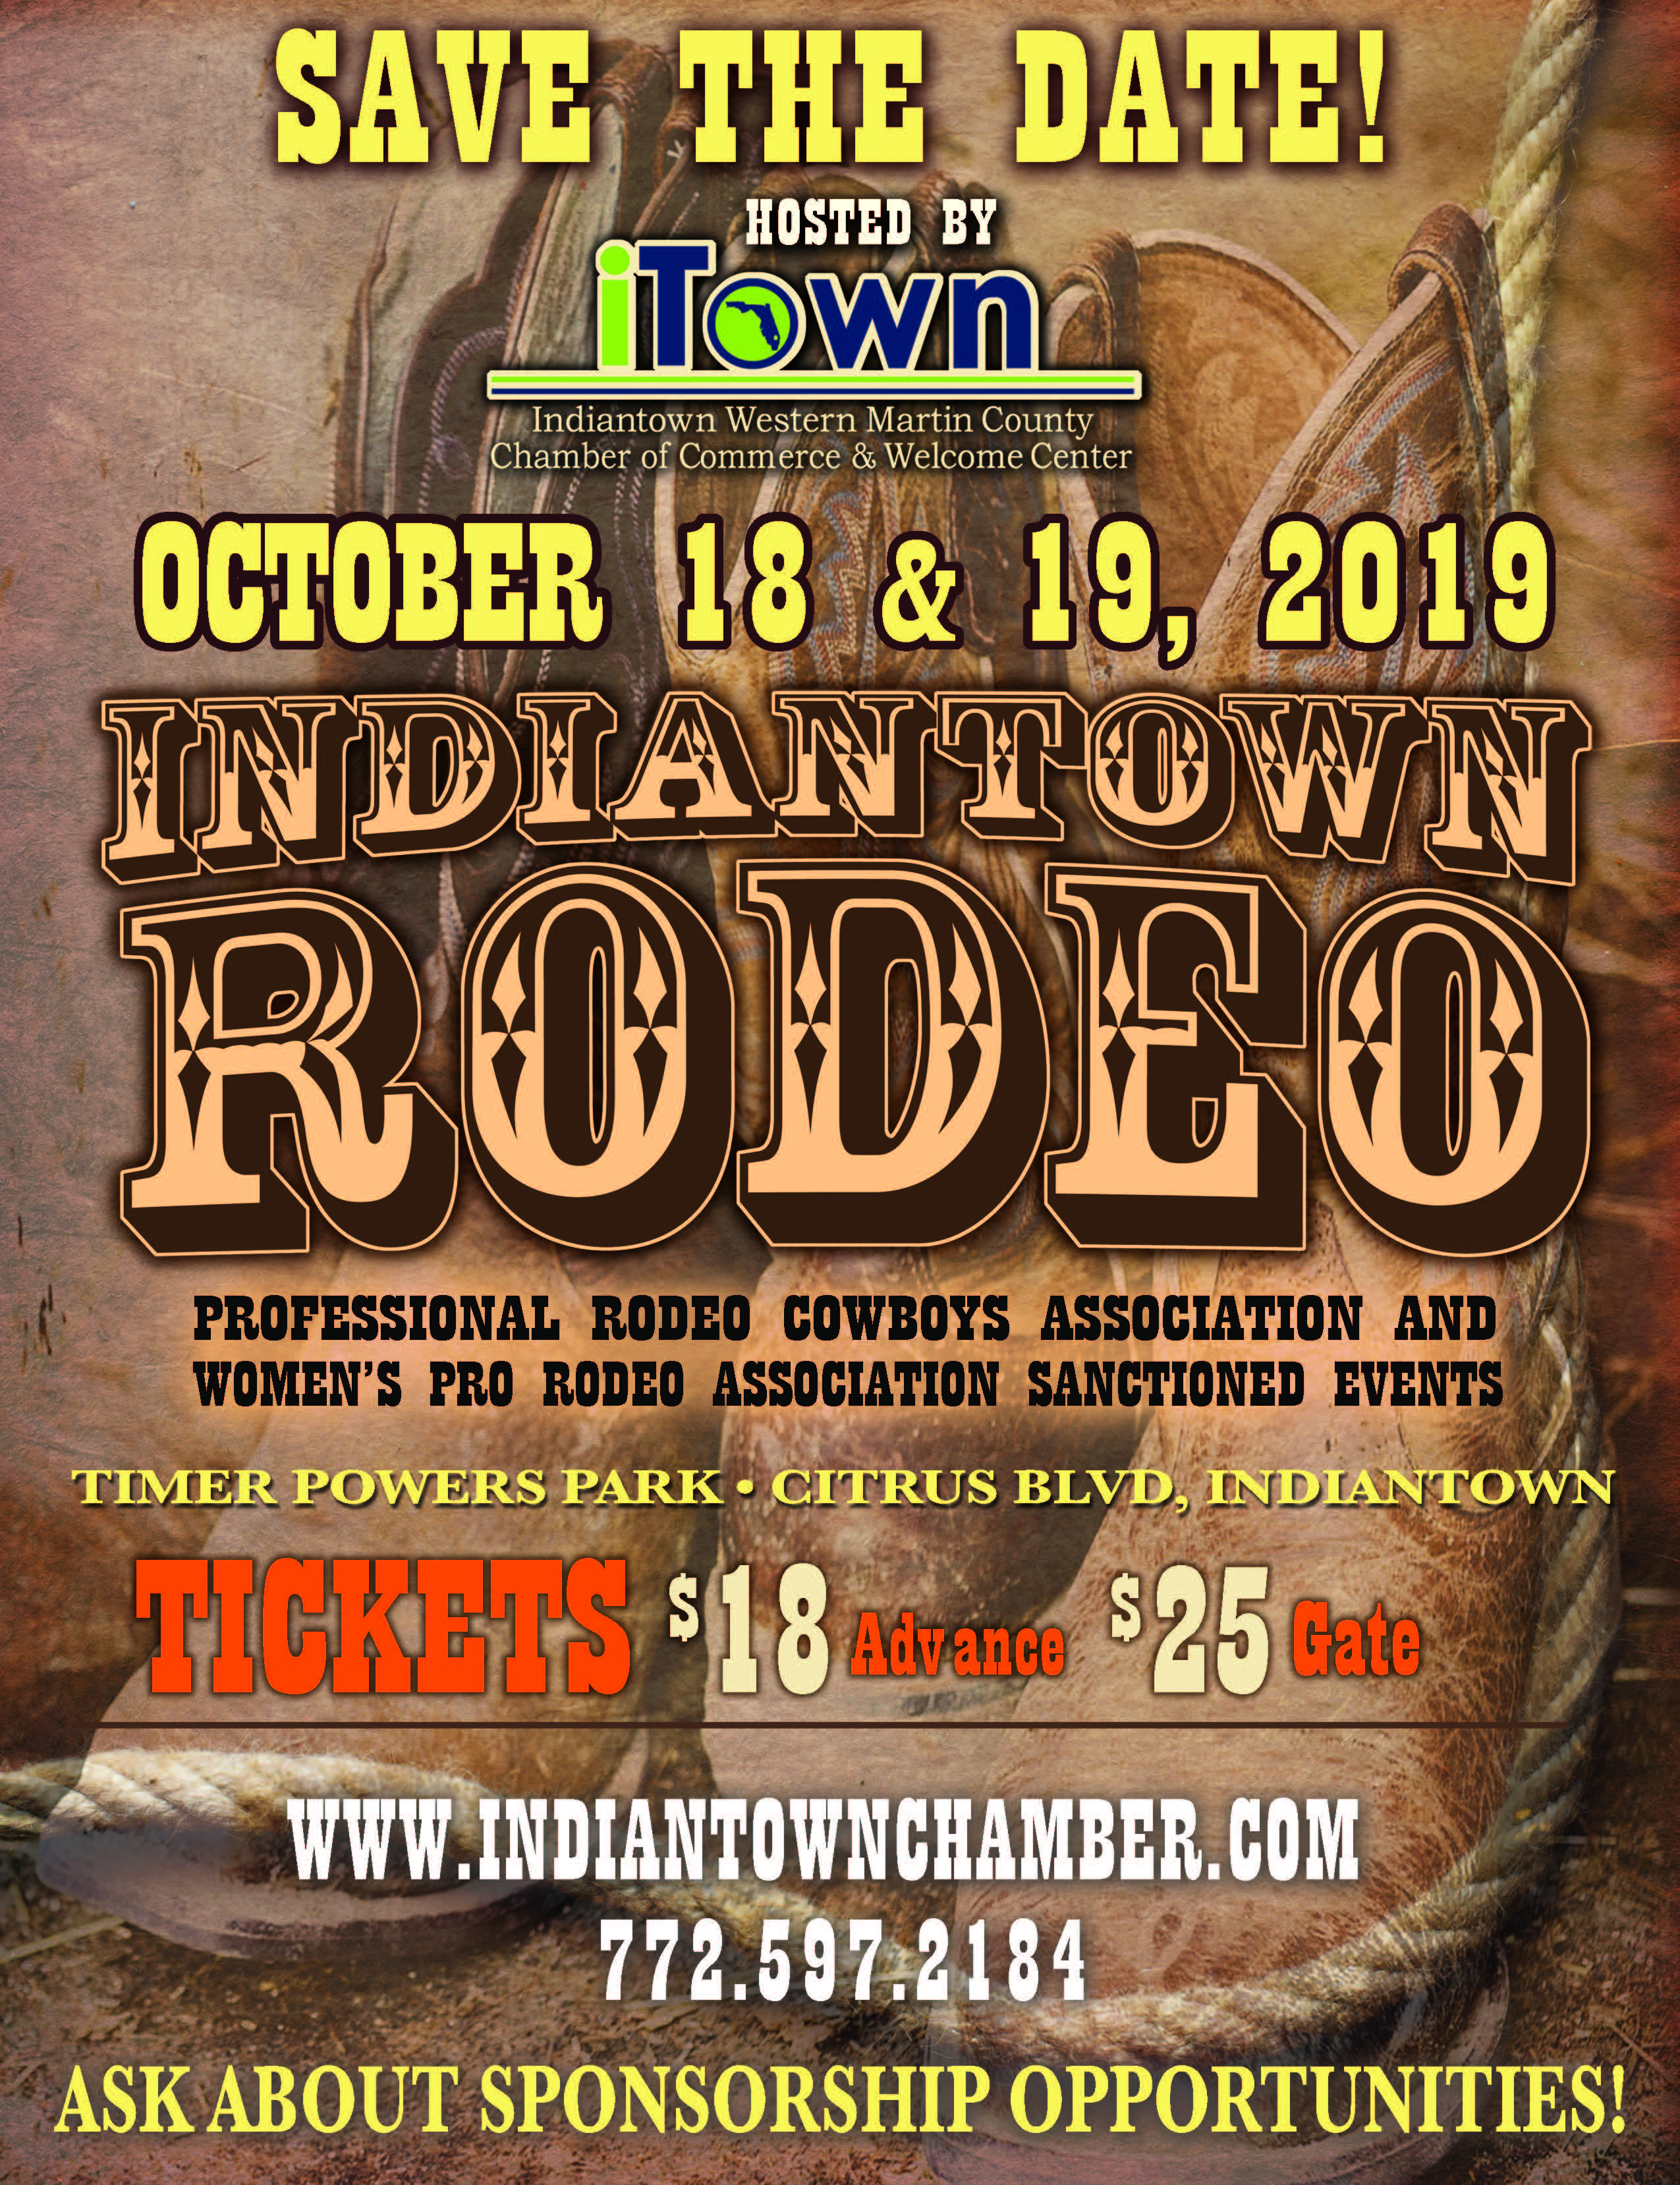 Indiantown Chamber Of Commerce Rodeo 2019